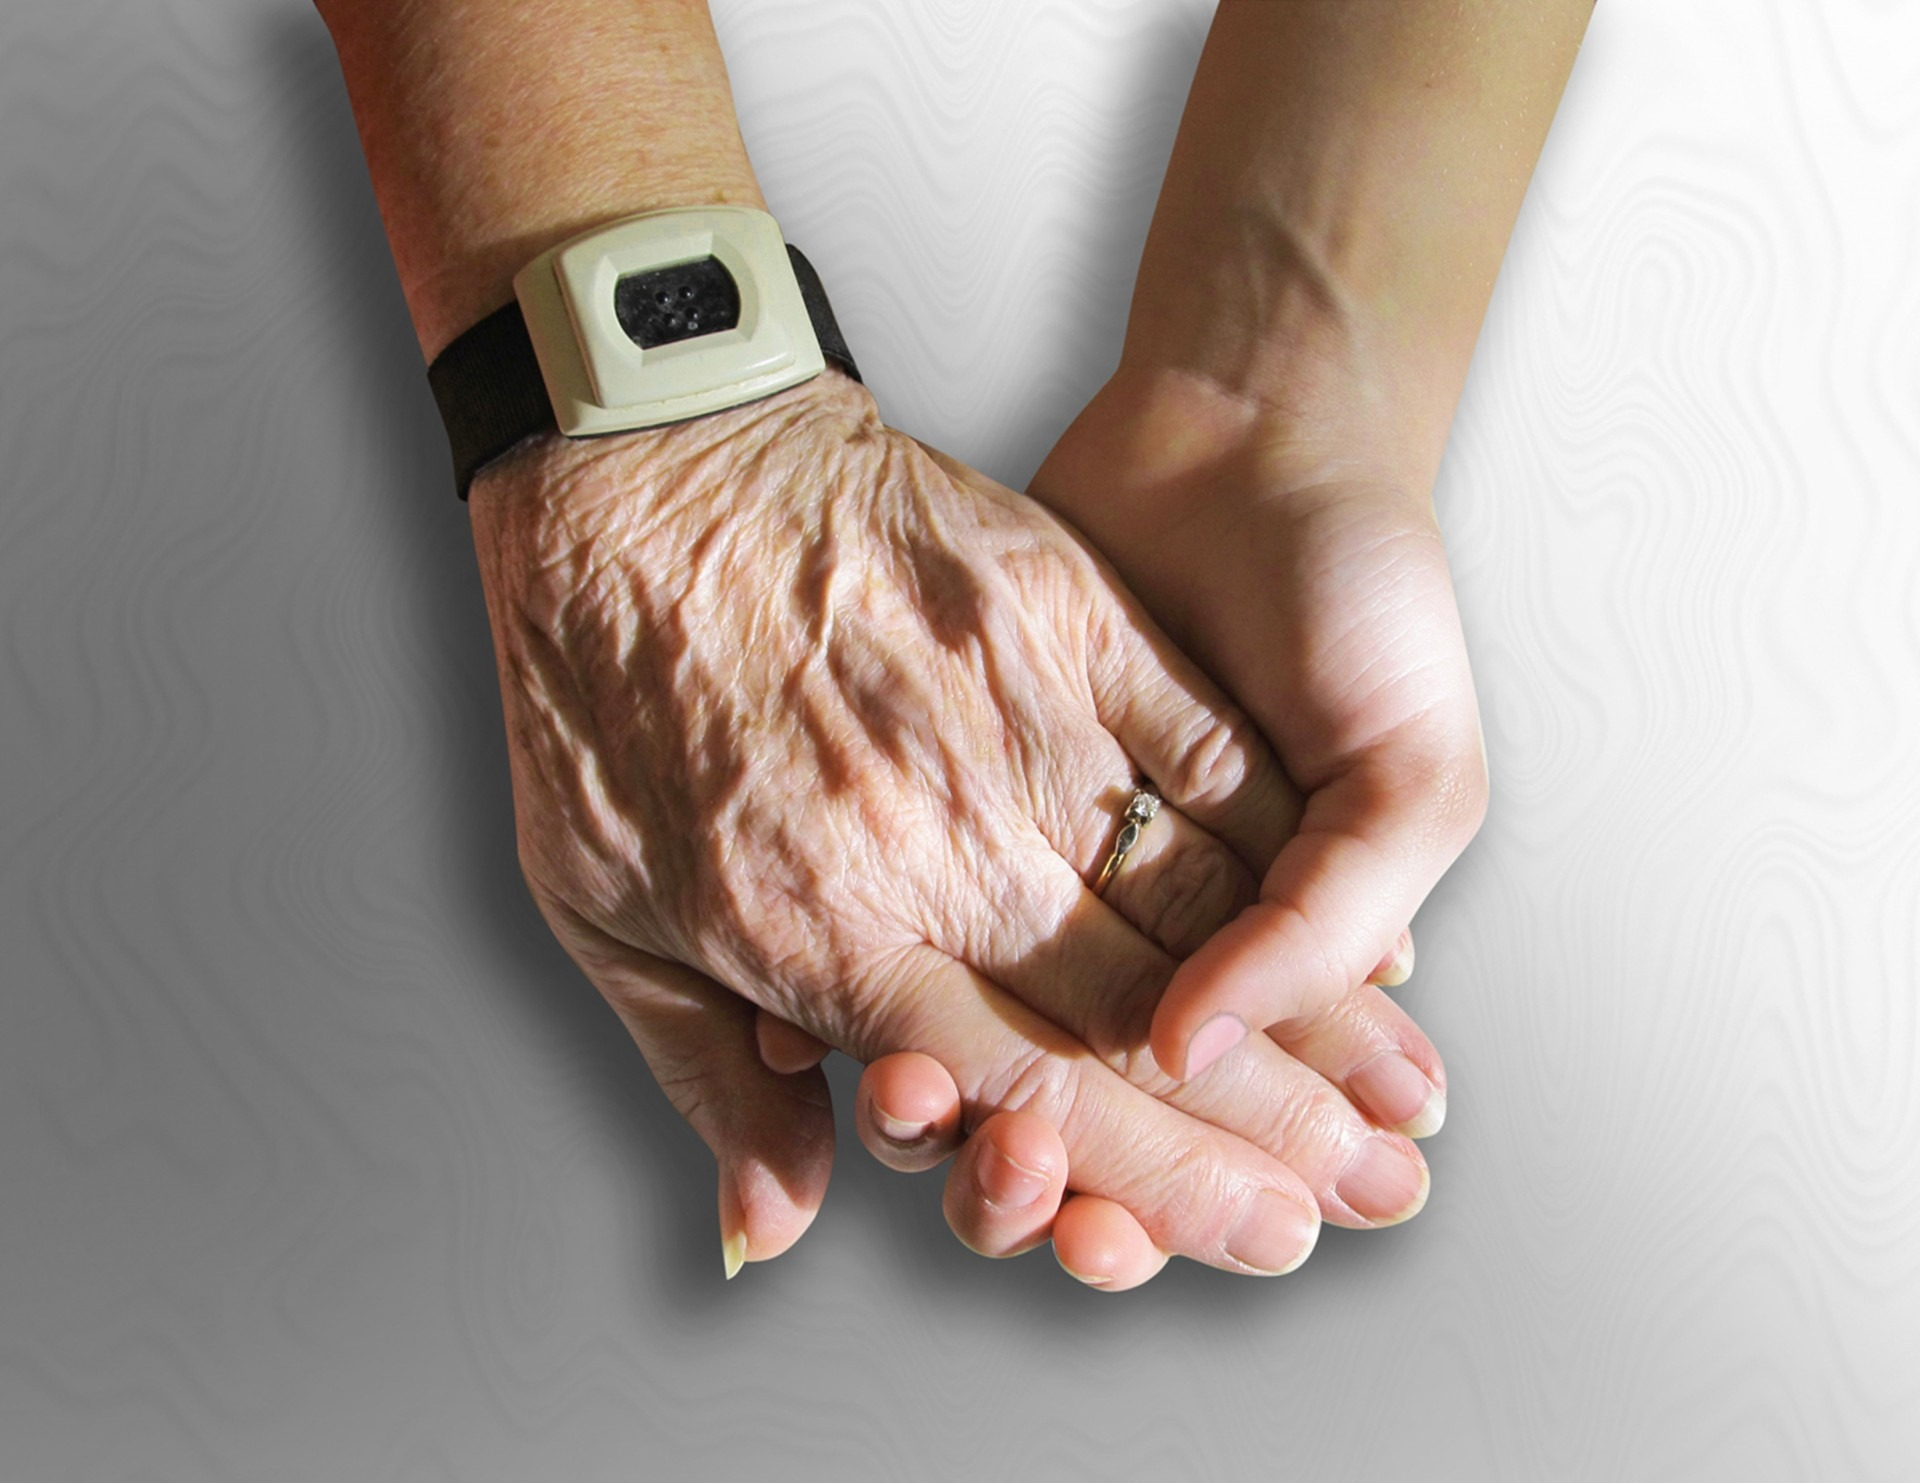 Three Strategies for Coping With Caregiver Stress and Exhaustion